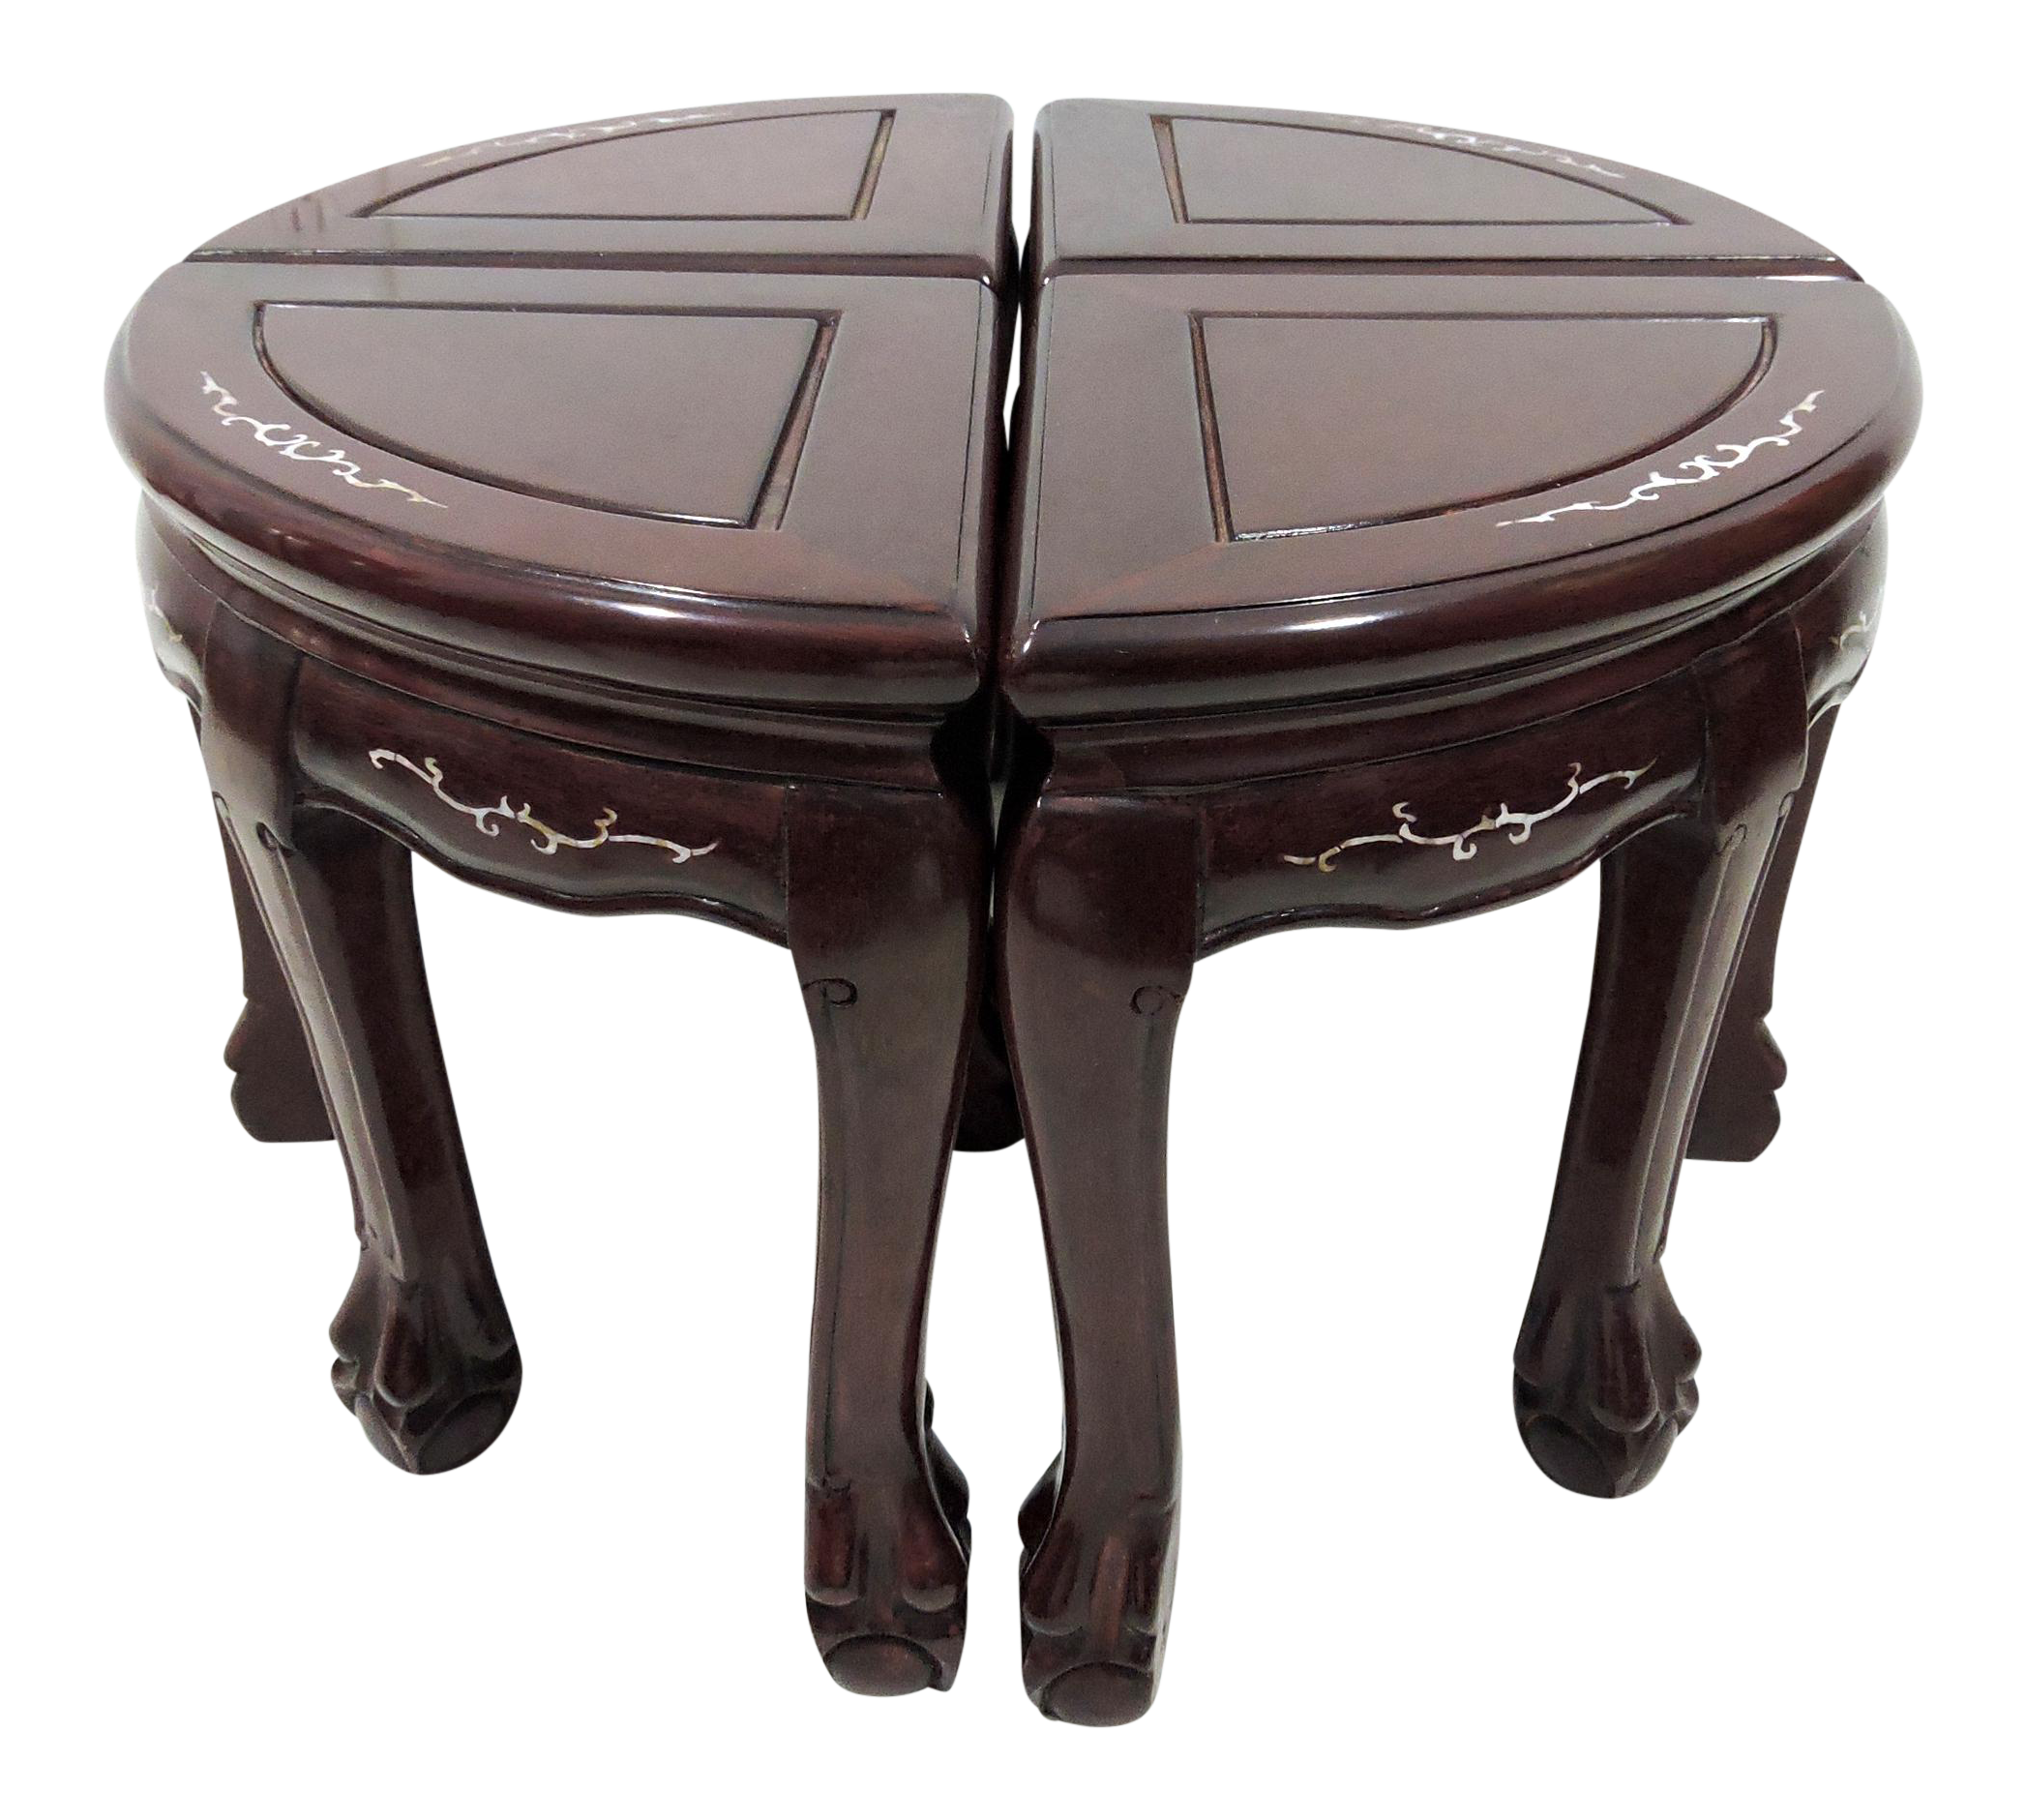 Sold 20th Century Chinese Rosewood And Mother Of Pearl Coffee Table 4 Stools 2 Demi Lunes On Chairish Com Coffee Table Setting Coffee Table Table [ 1881 x 2094 Pixel ]